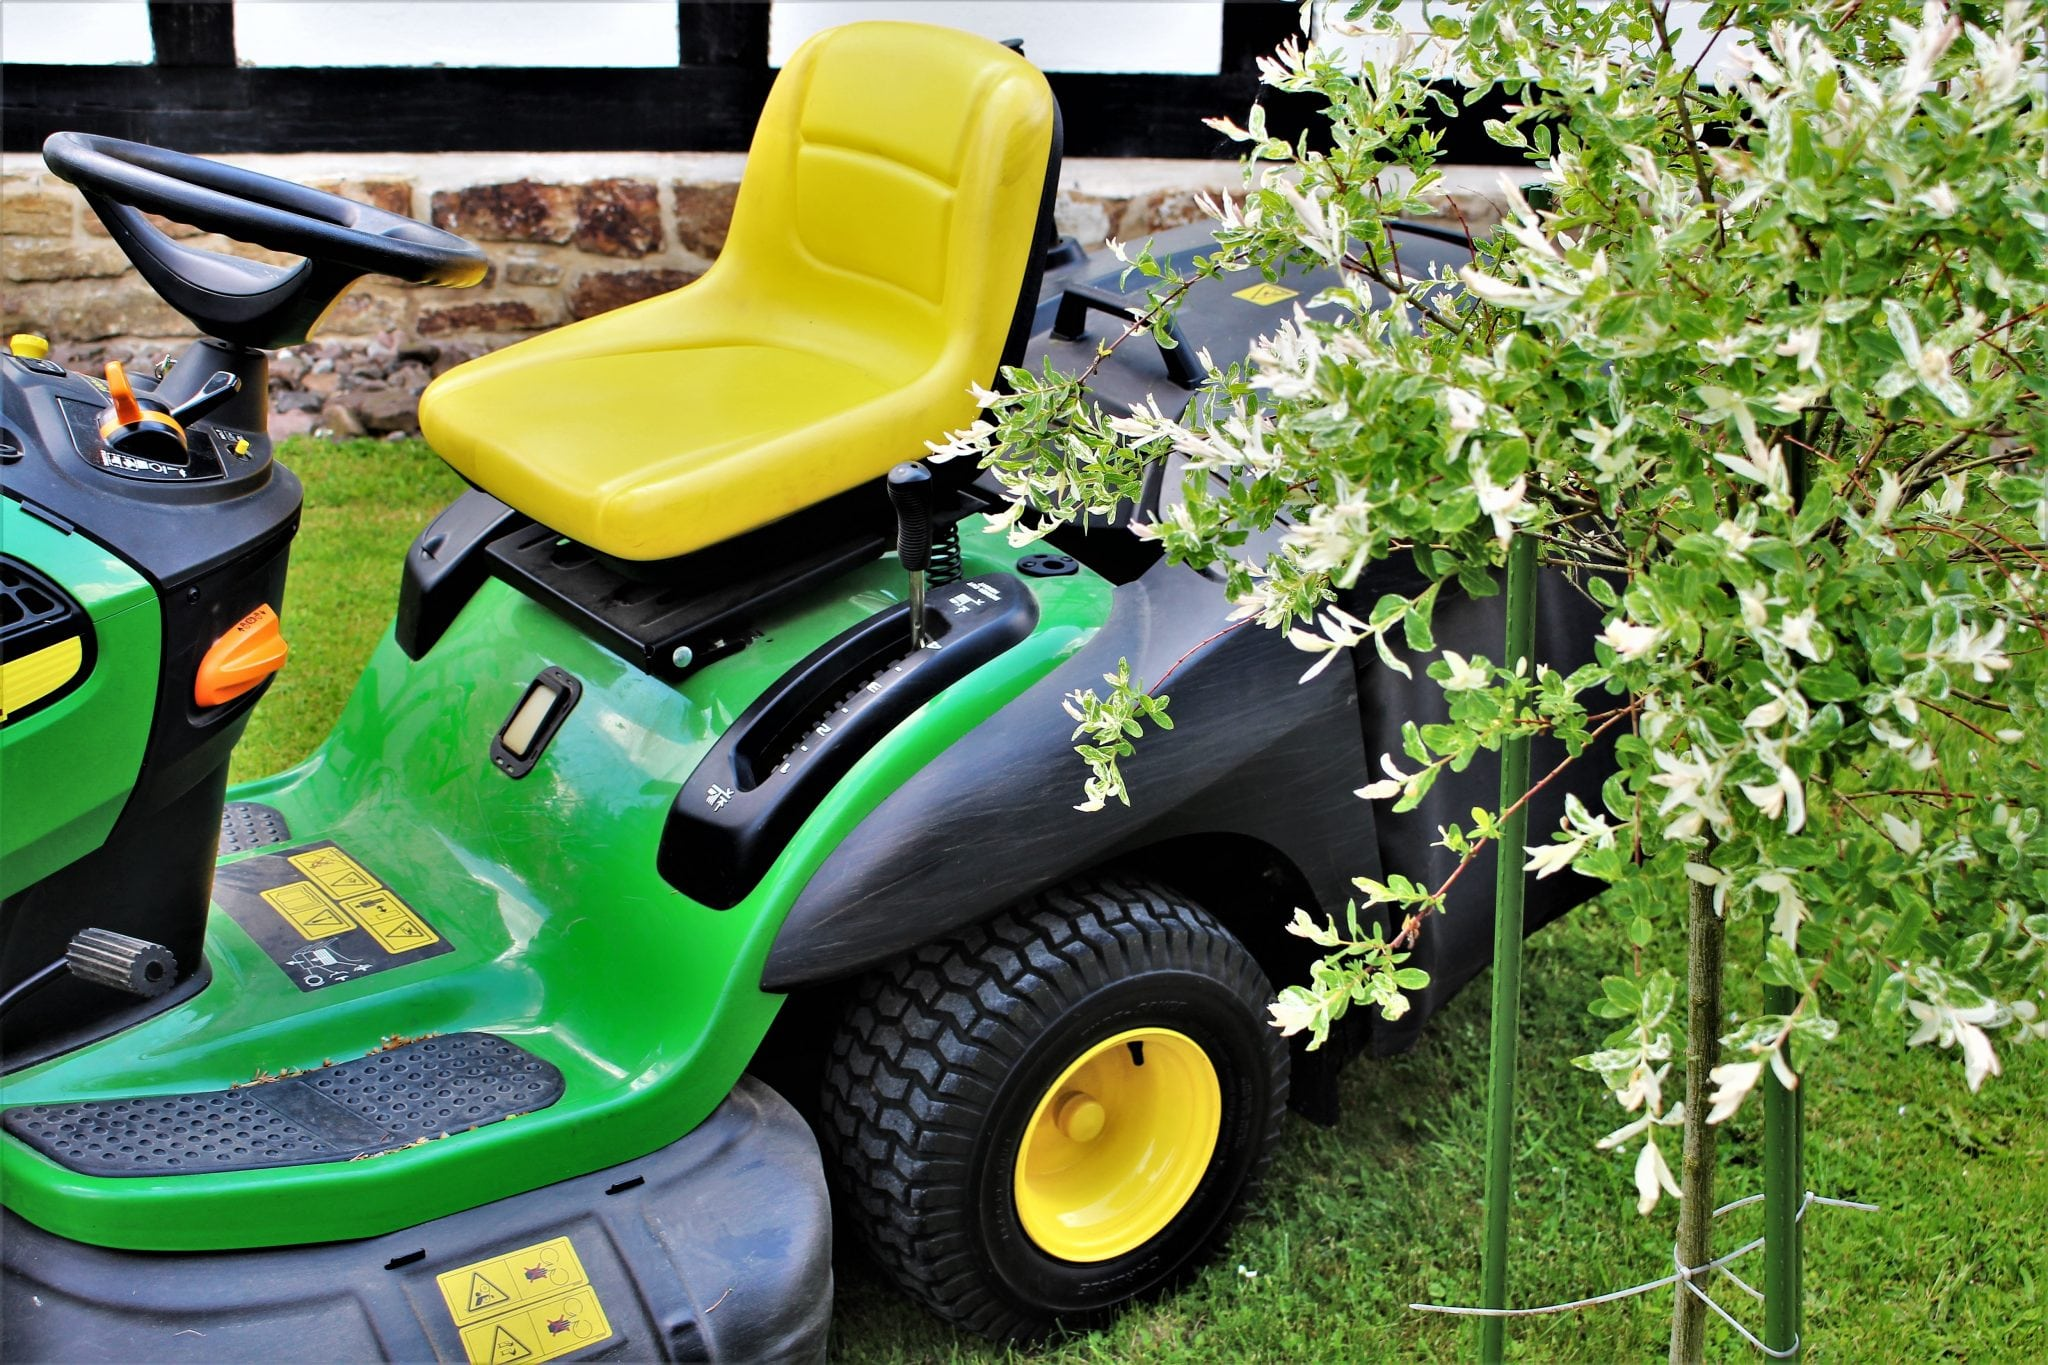 image of green lawn tractor mowing lawn